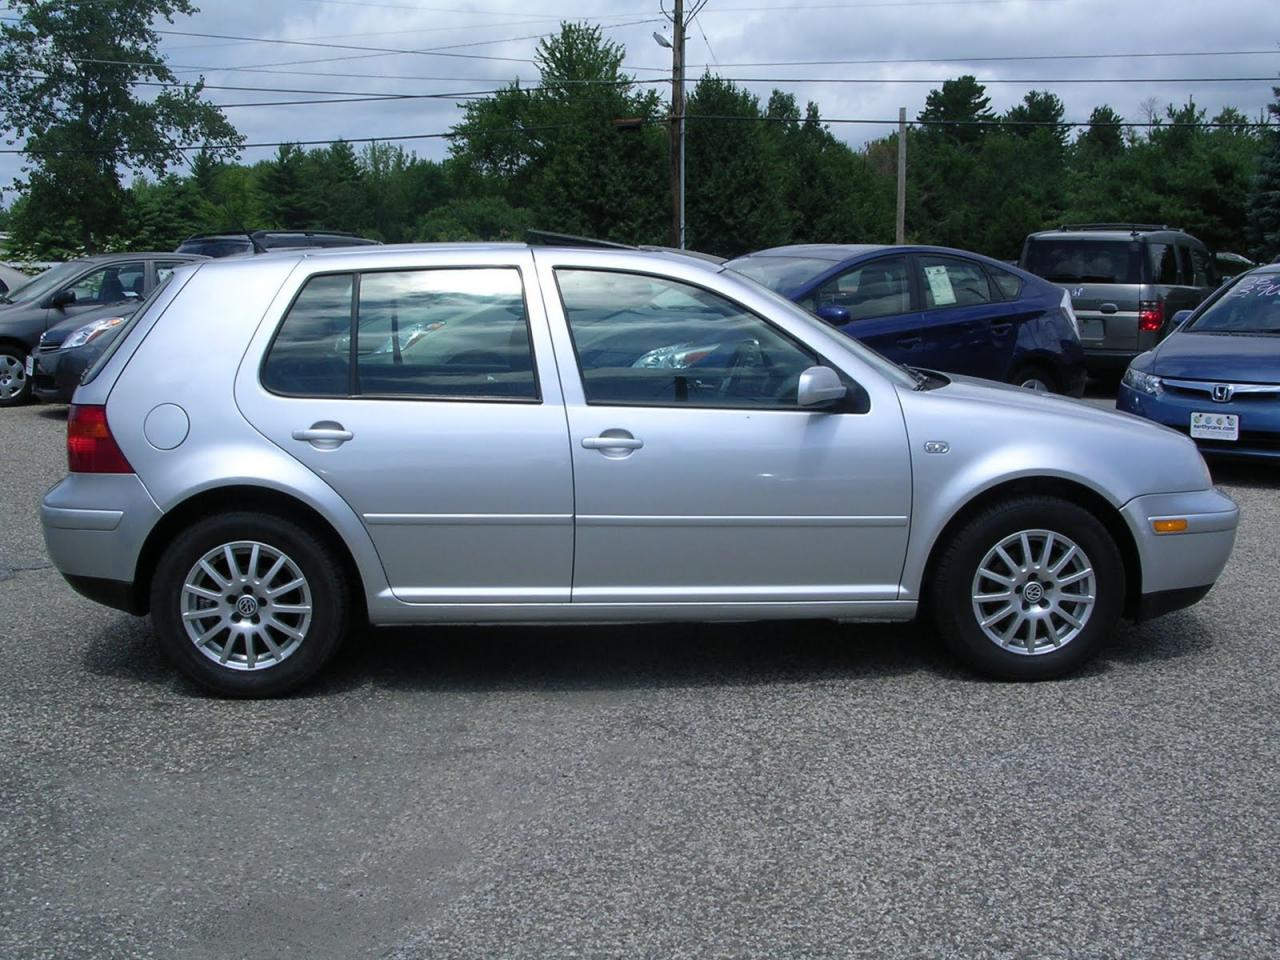 2003 volkswagen golf information and photos zombiedrive. Black Bedroom Furniture Sets. Home Design Ideas